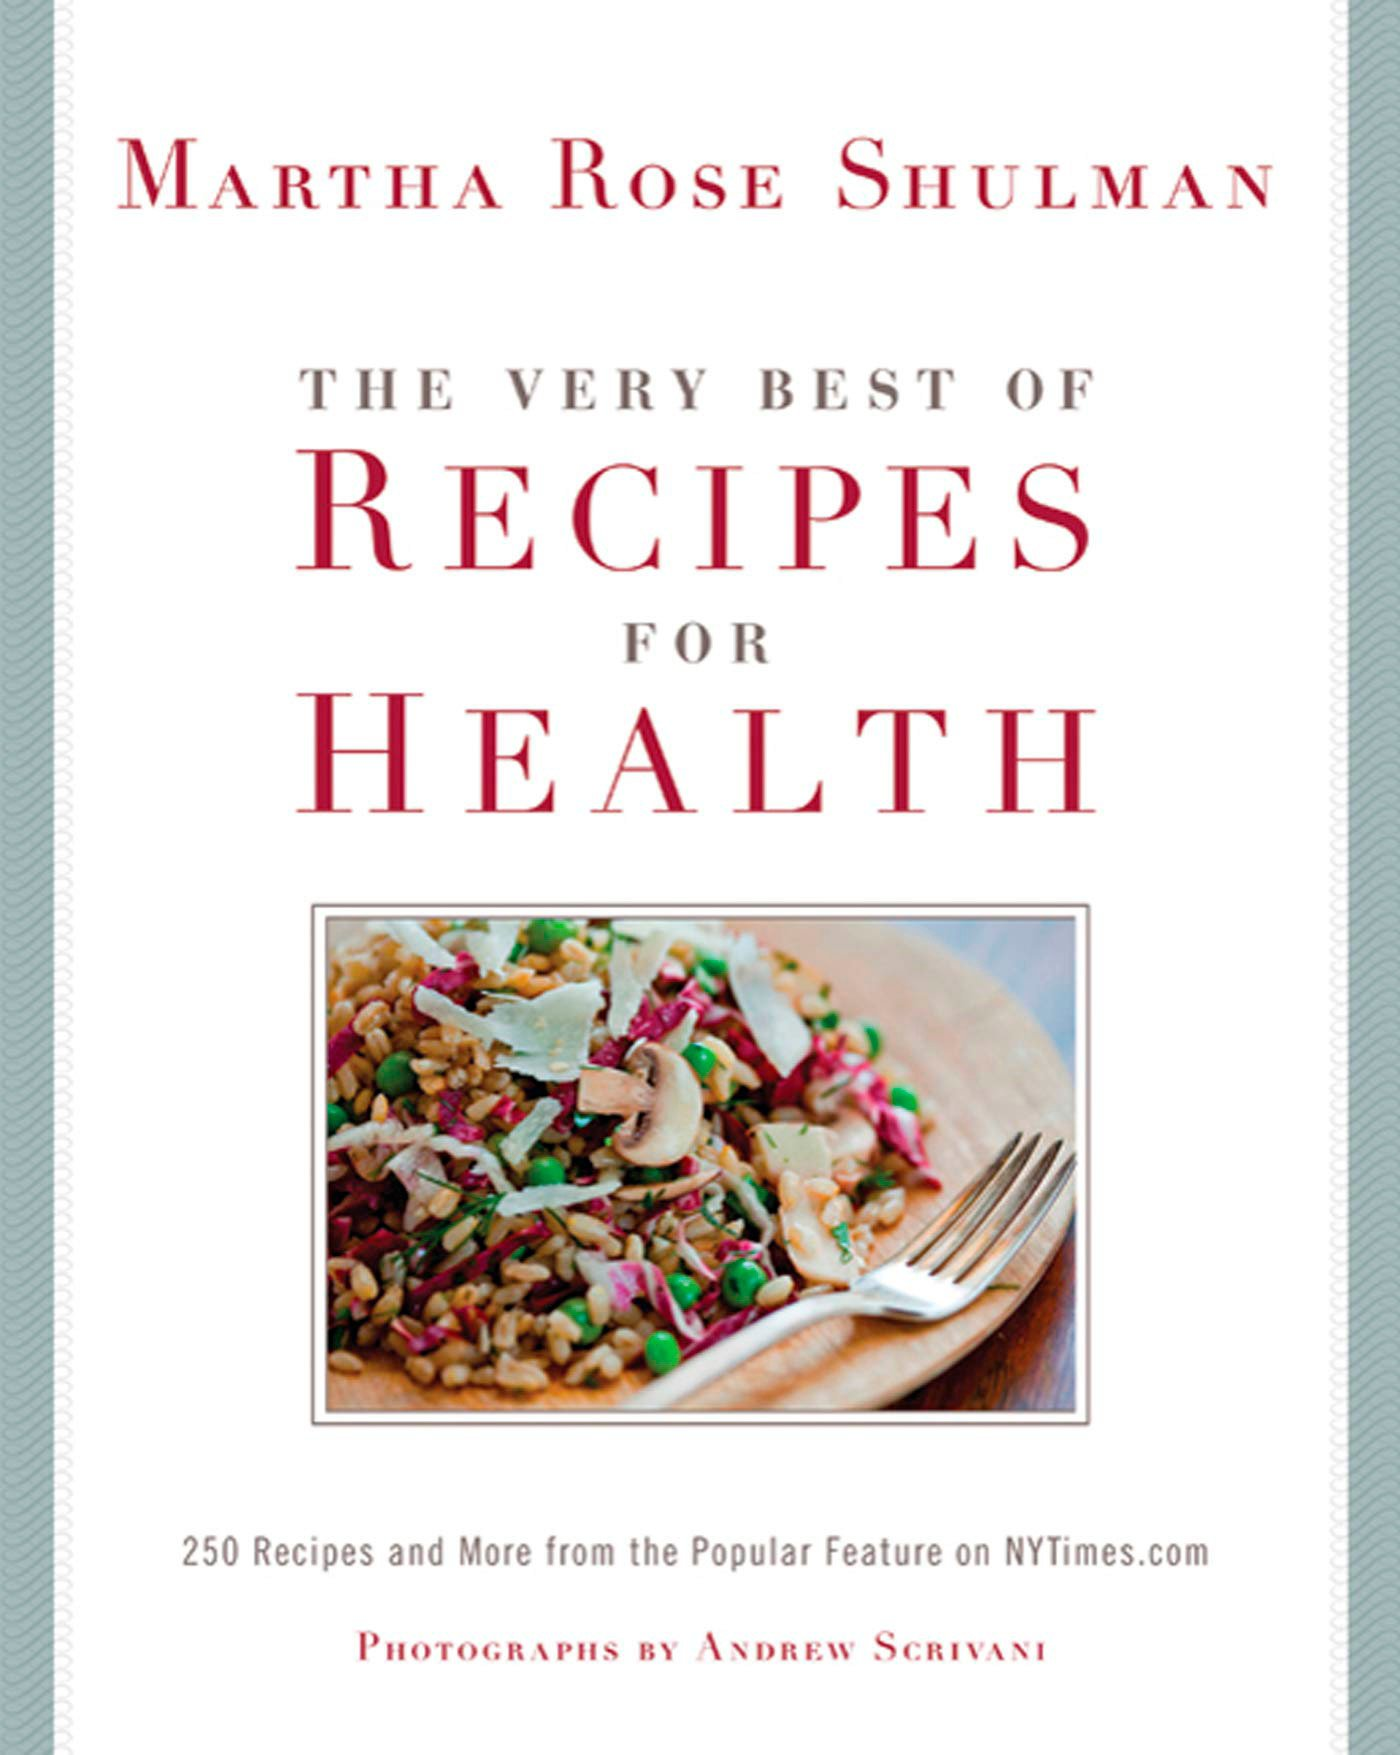 The Very Best Of Recipes for Health: 250 Recipes and More from the Popular Feature on NYTimes.com pdf epub